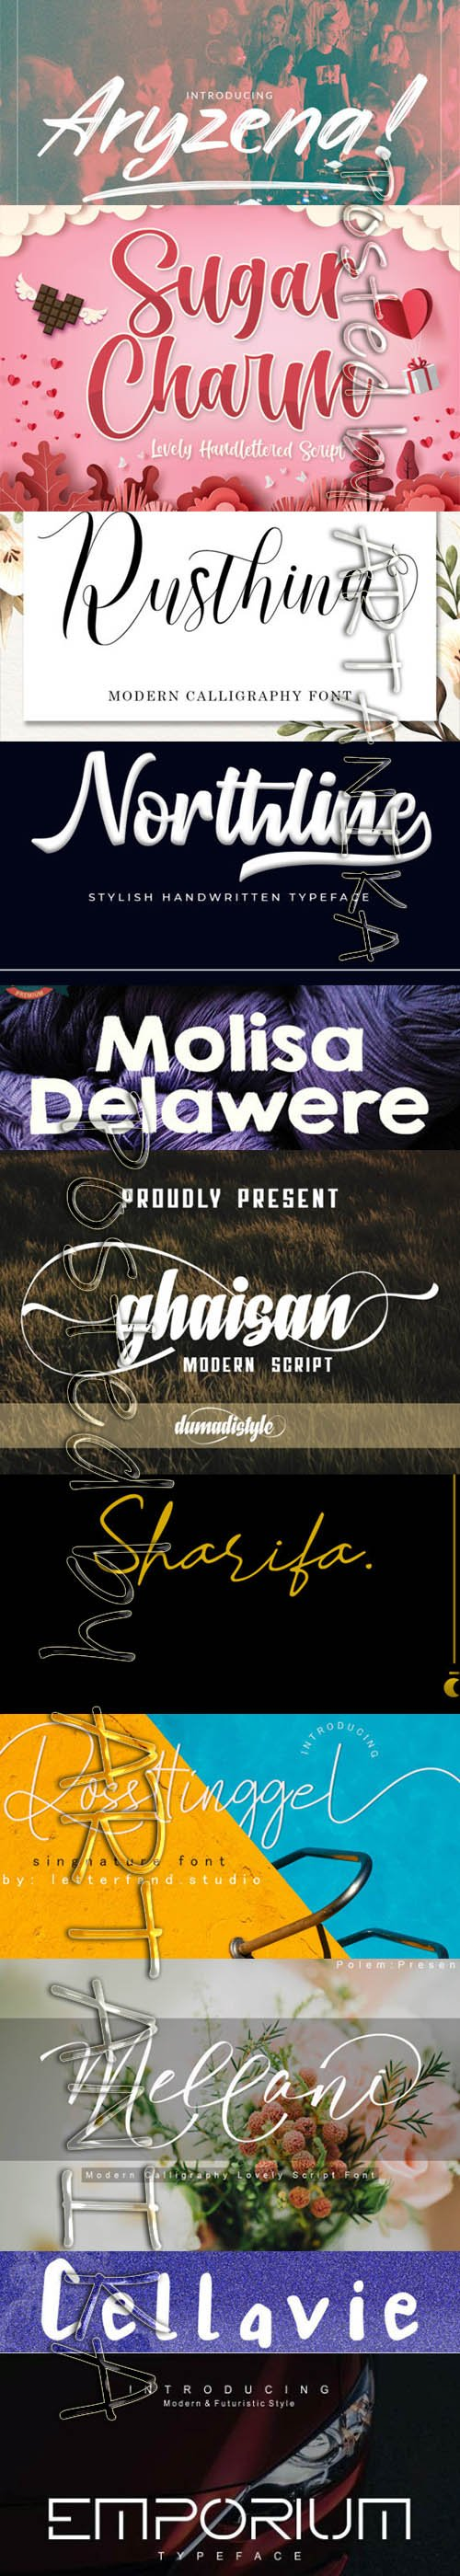 Collection of 11 Creative Fresh Fonts 2020 Vol 7